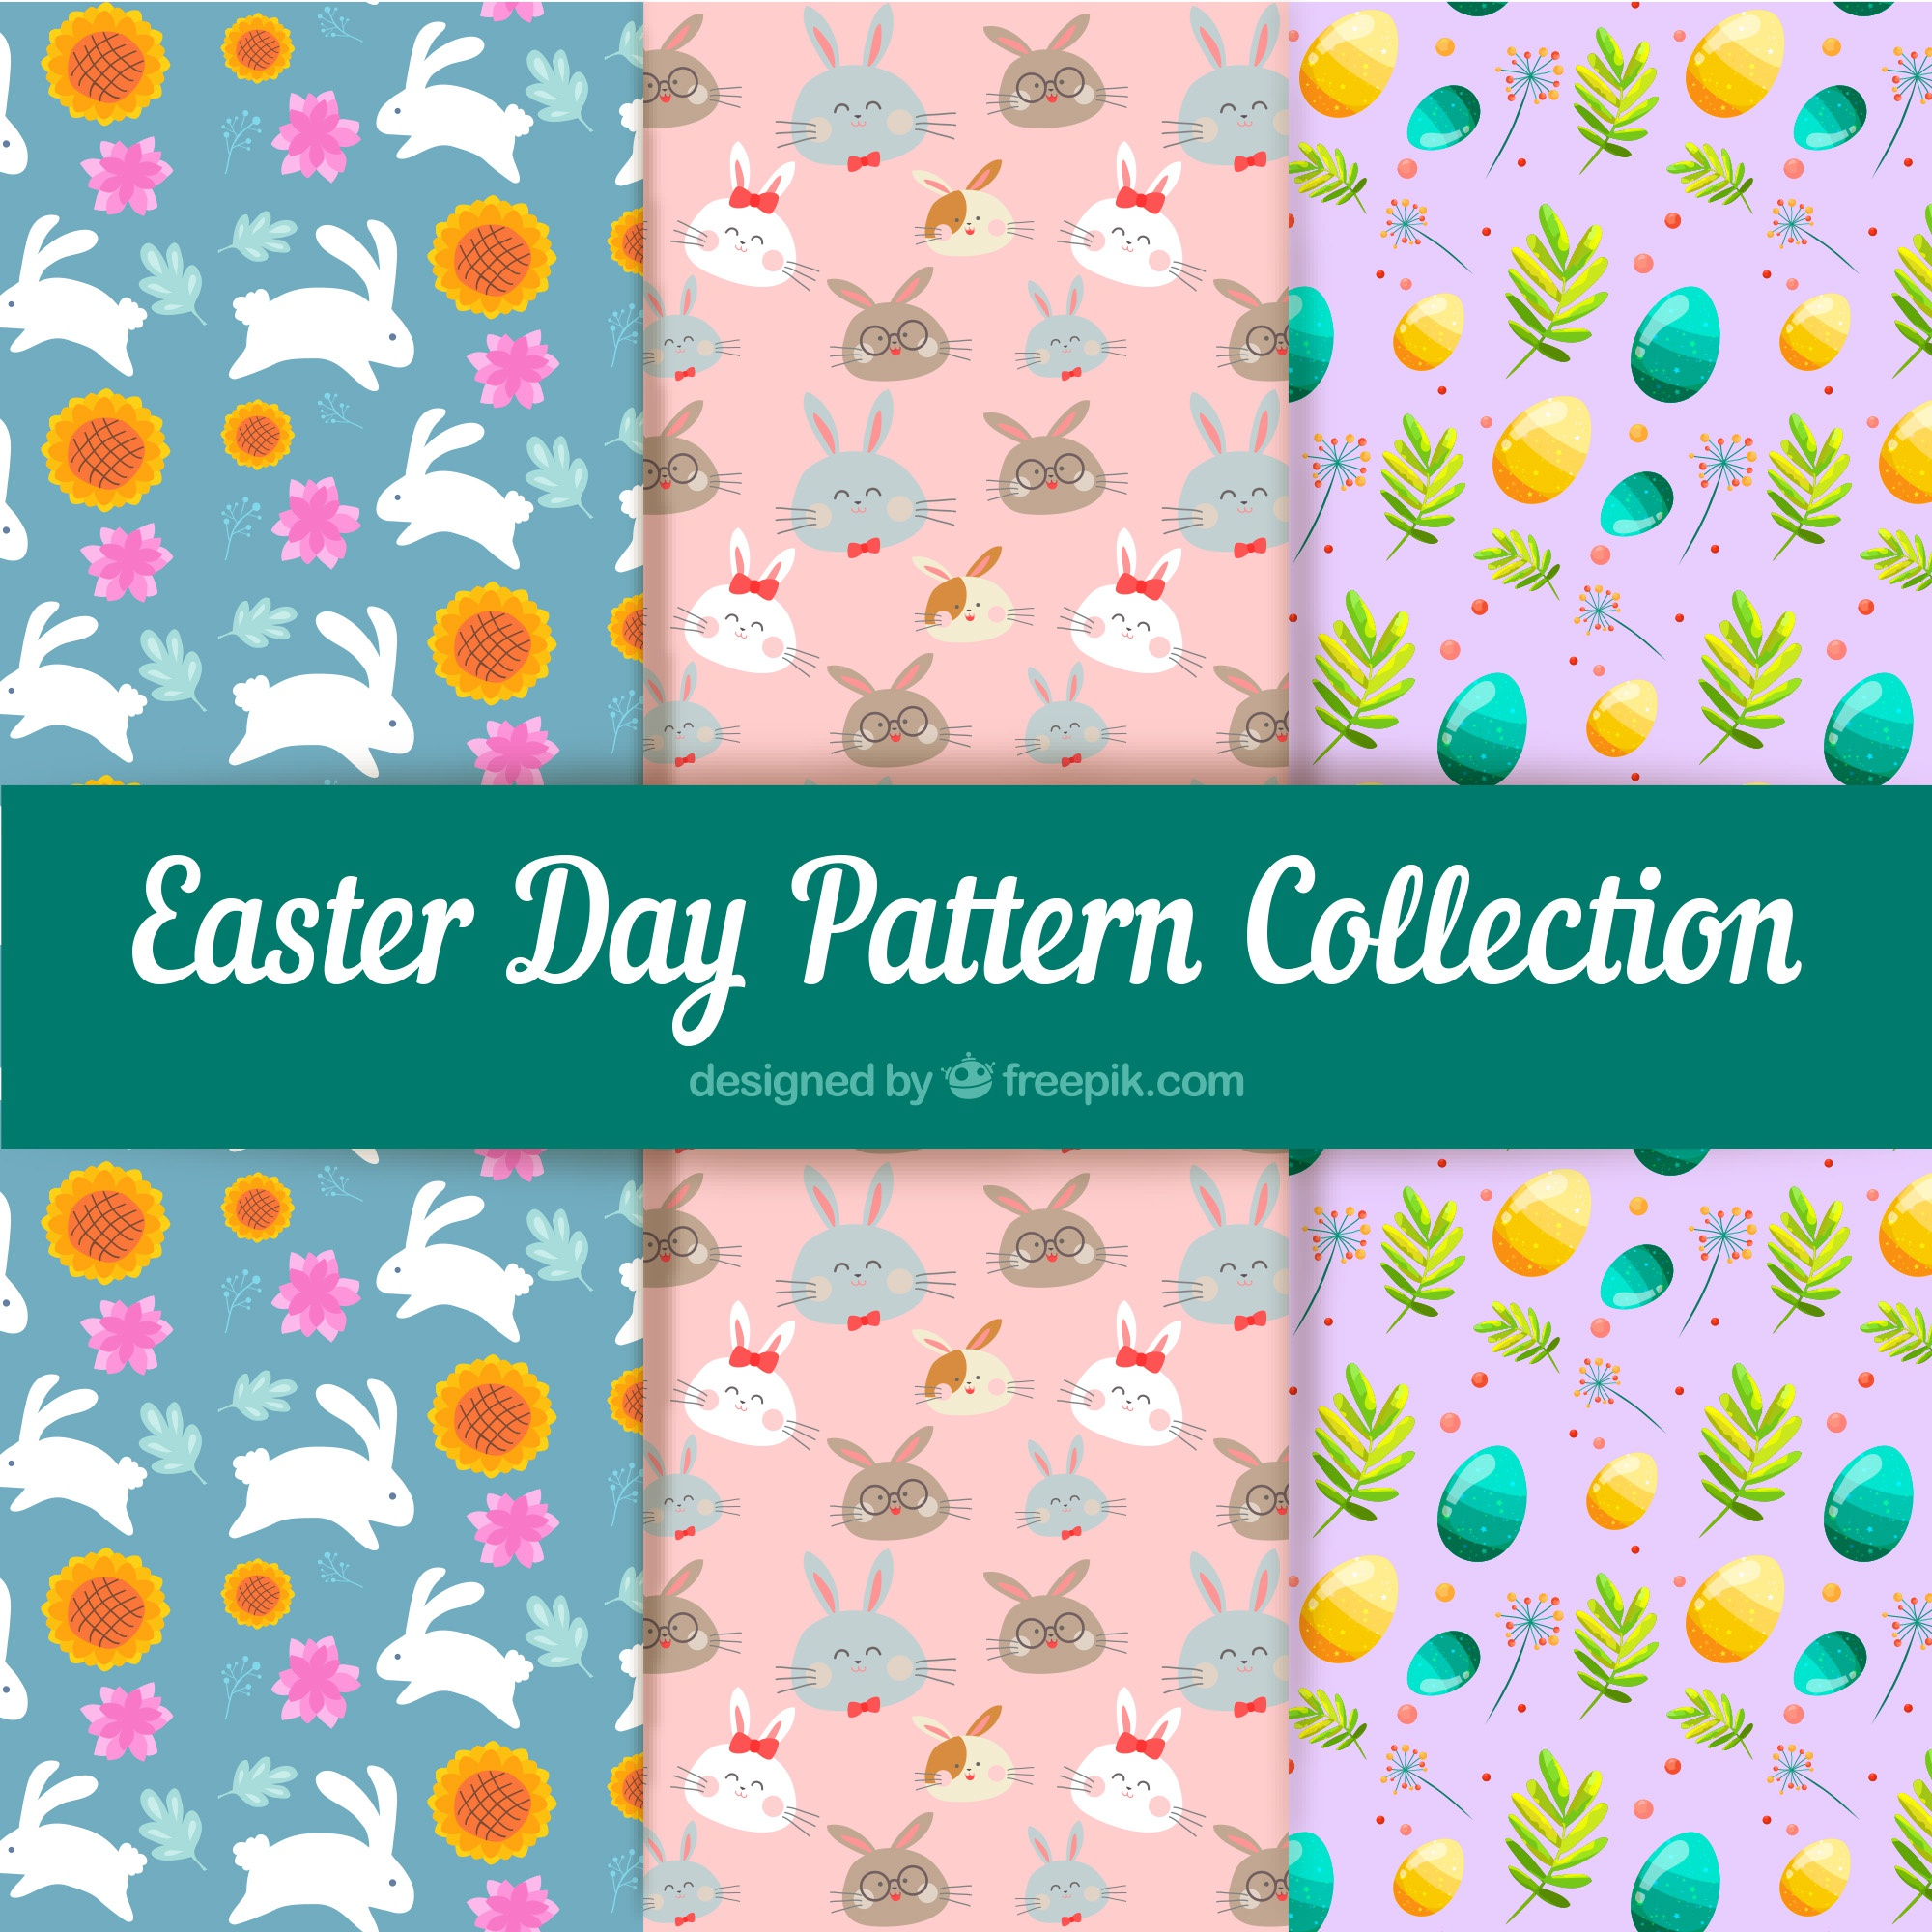 Easter day patterns collection with eggs and animals